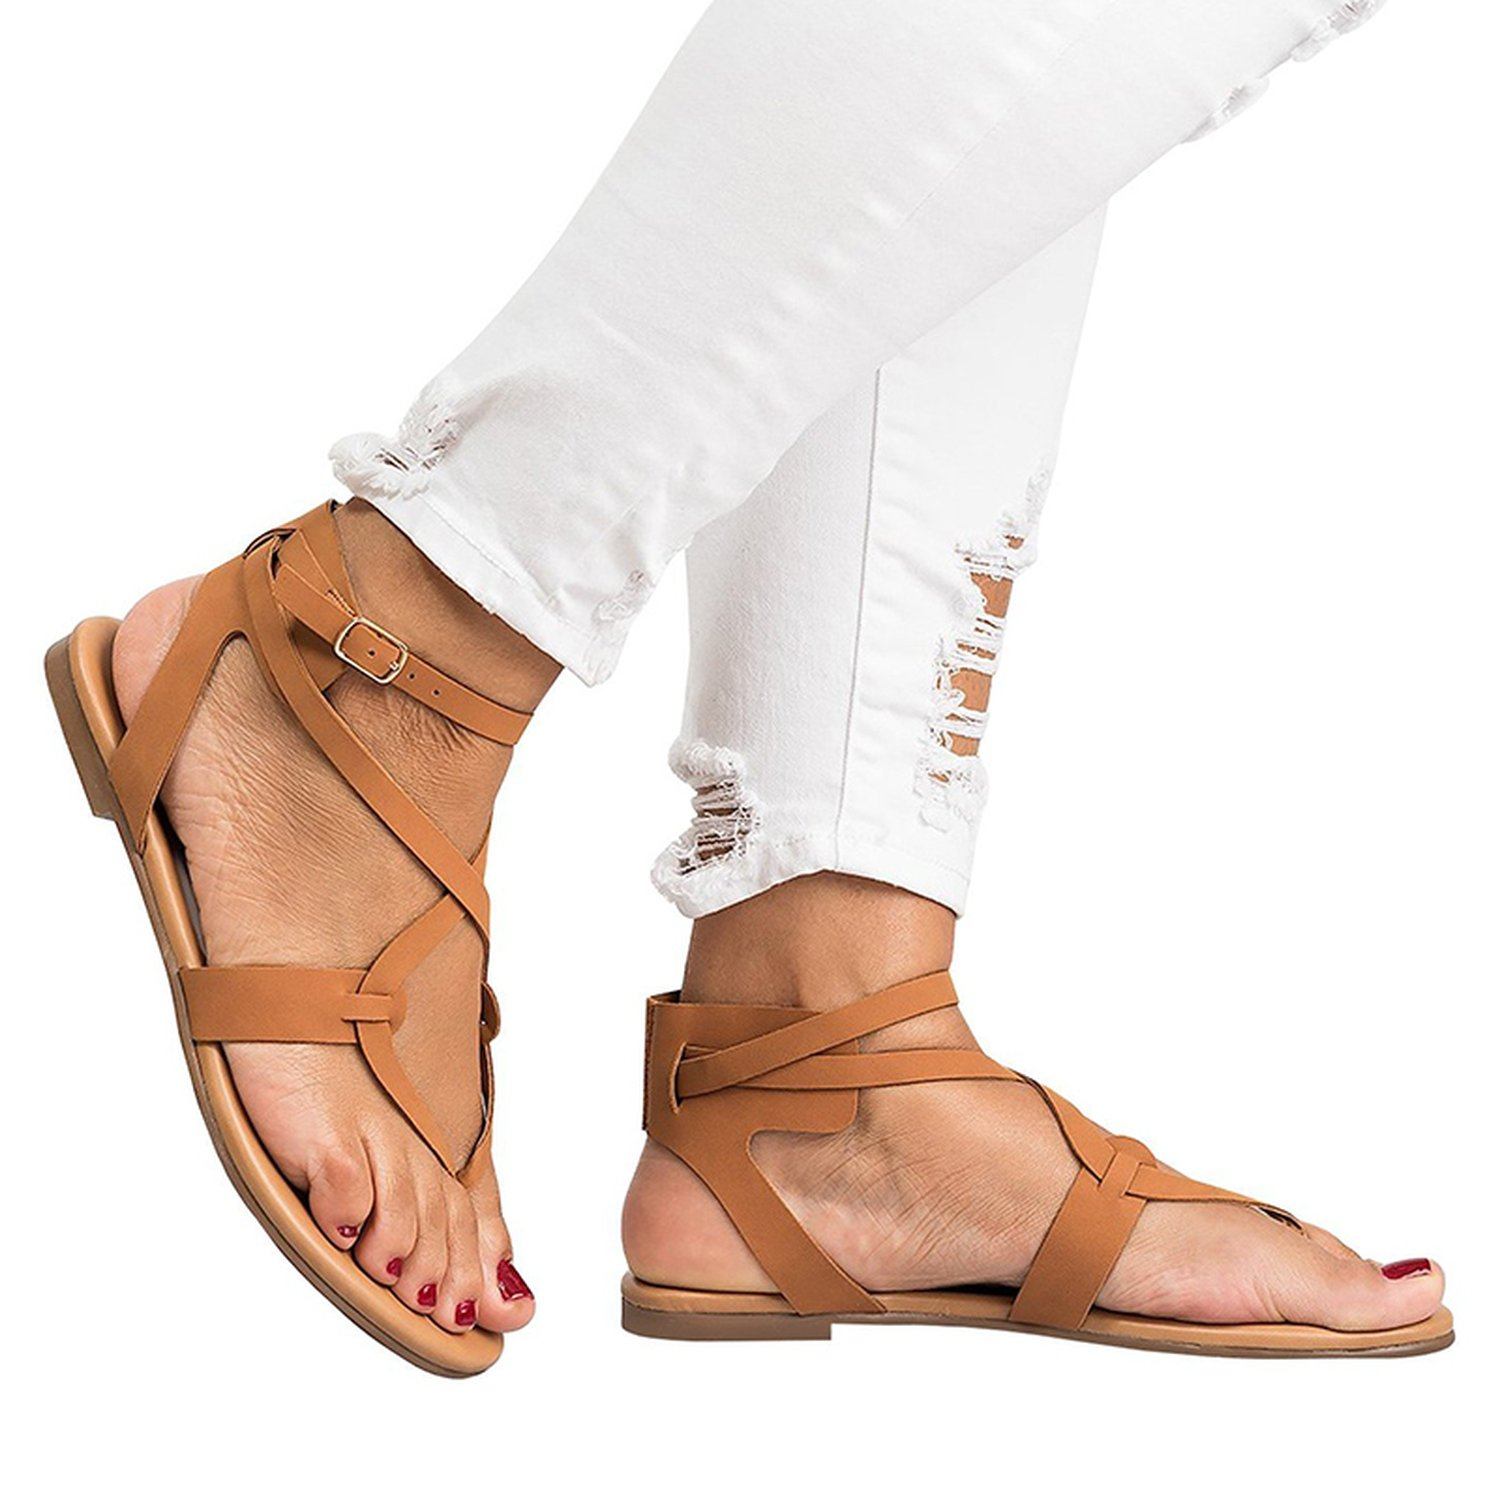 Romantic moments New Arrive Women Gladiator Sandals Summer Women Shoes Plus Size 35-43 Flats Sandals B07DLT1TMT 10 B(M) US|Brown